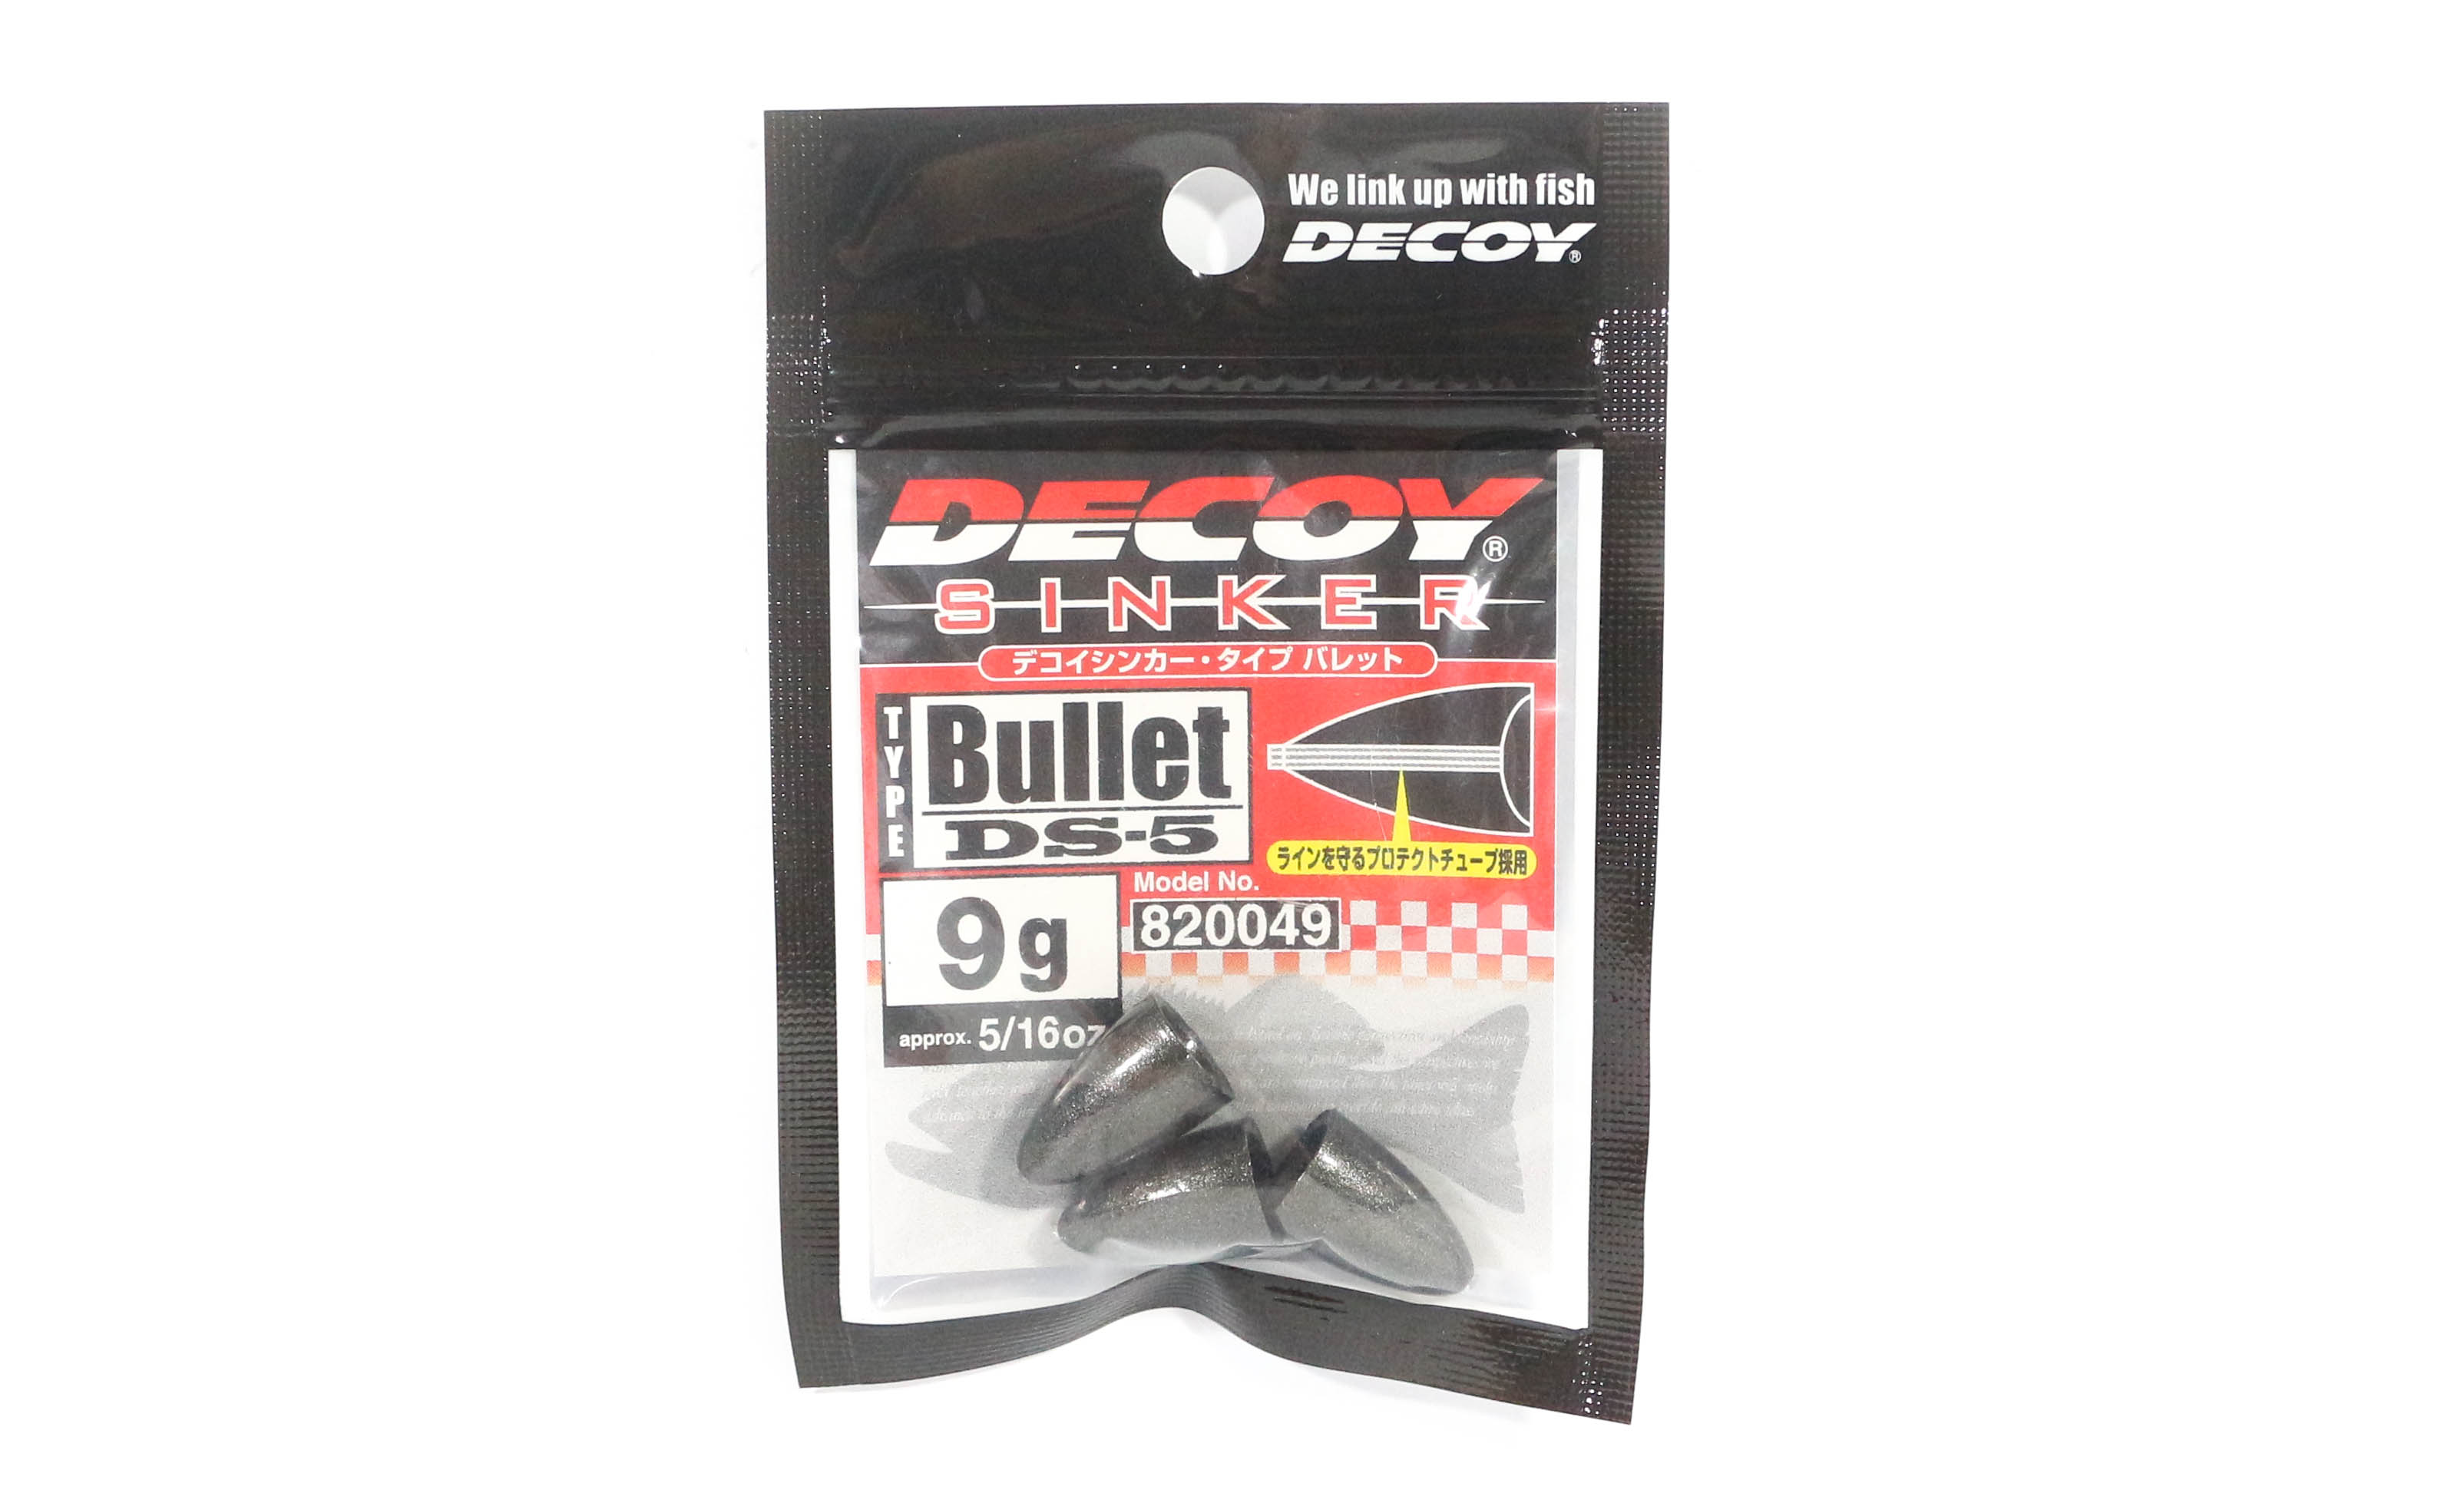 Decoy DS-5 Sinker Type Bullet Size 9 grams (0049)